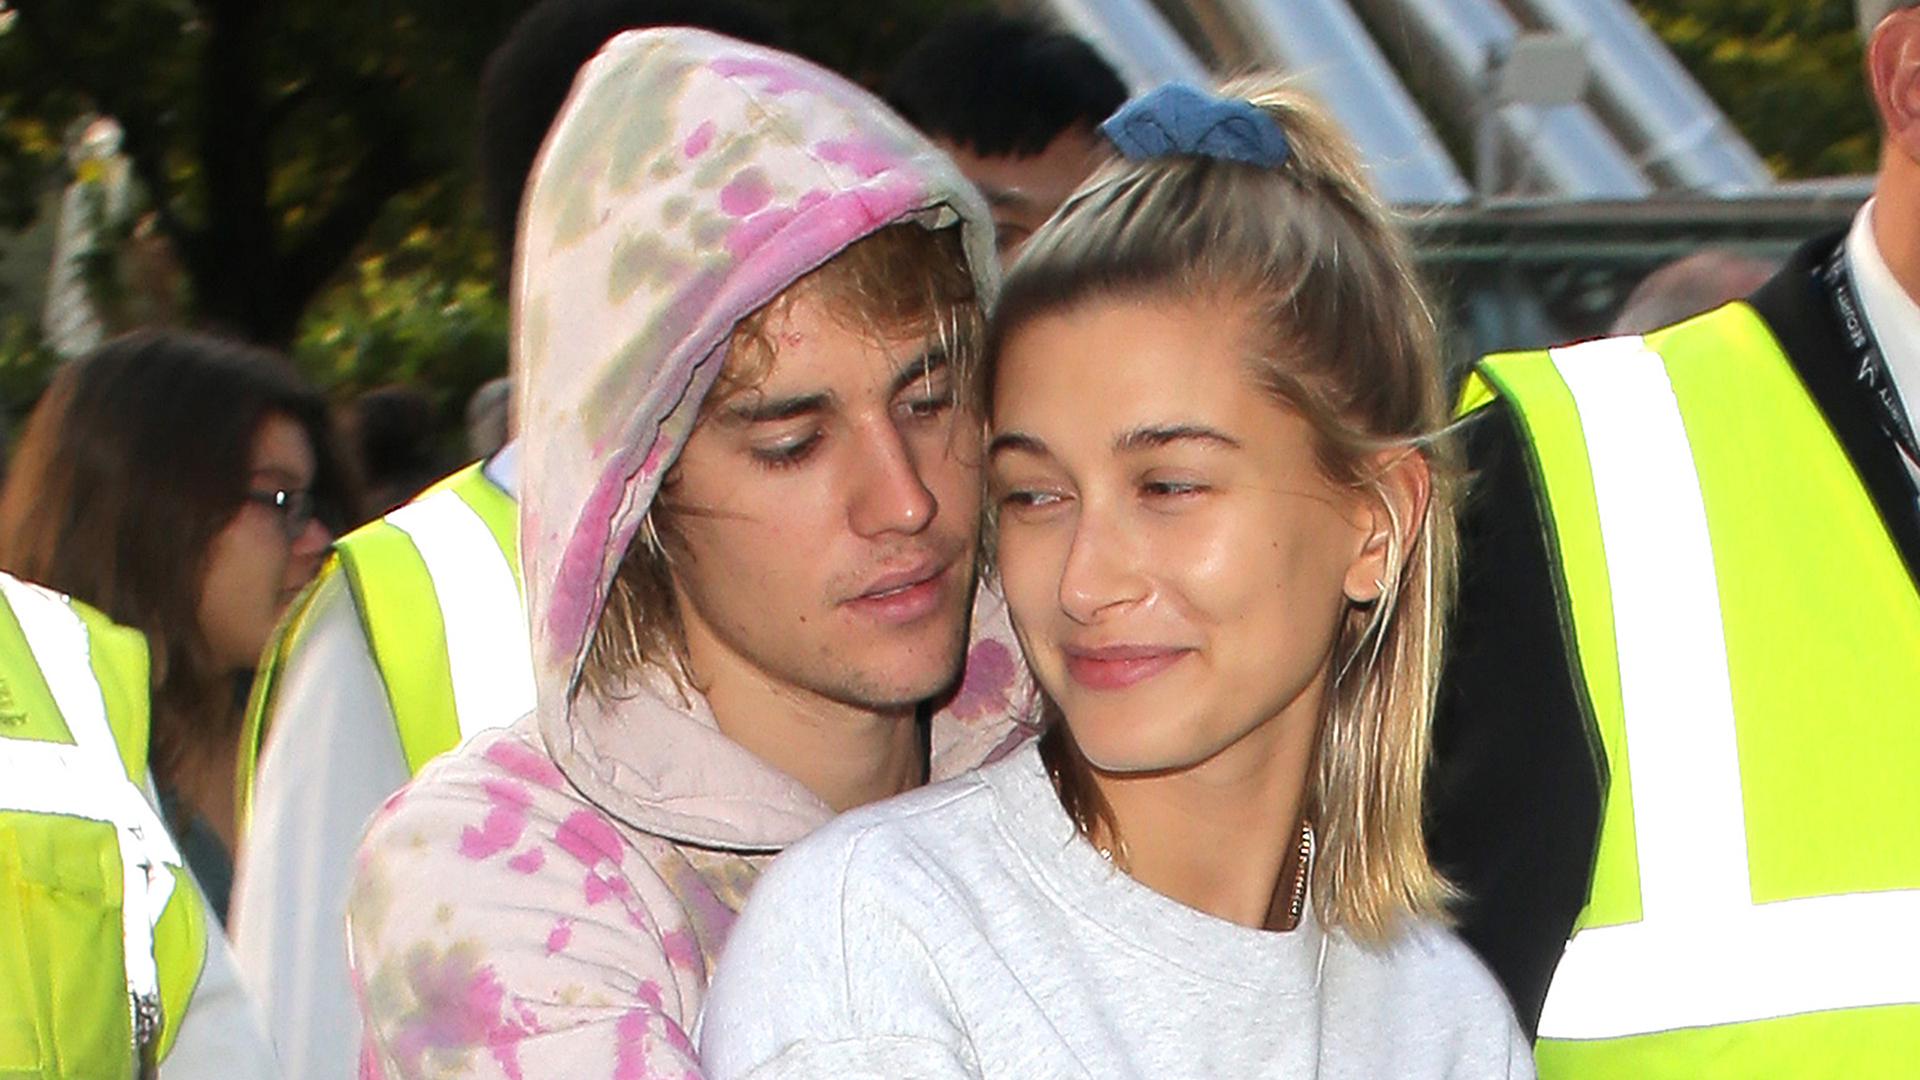 Hailey Baldwin says Justin Bieber is Clingy and Insecure